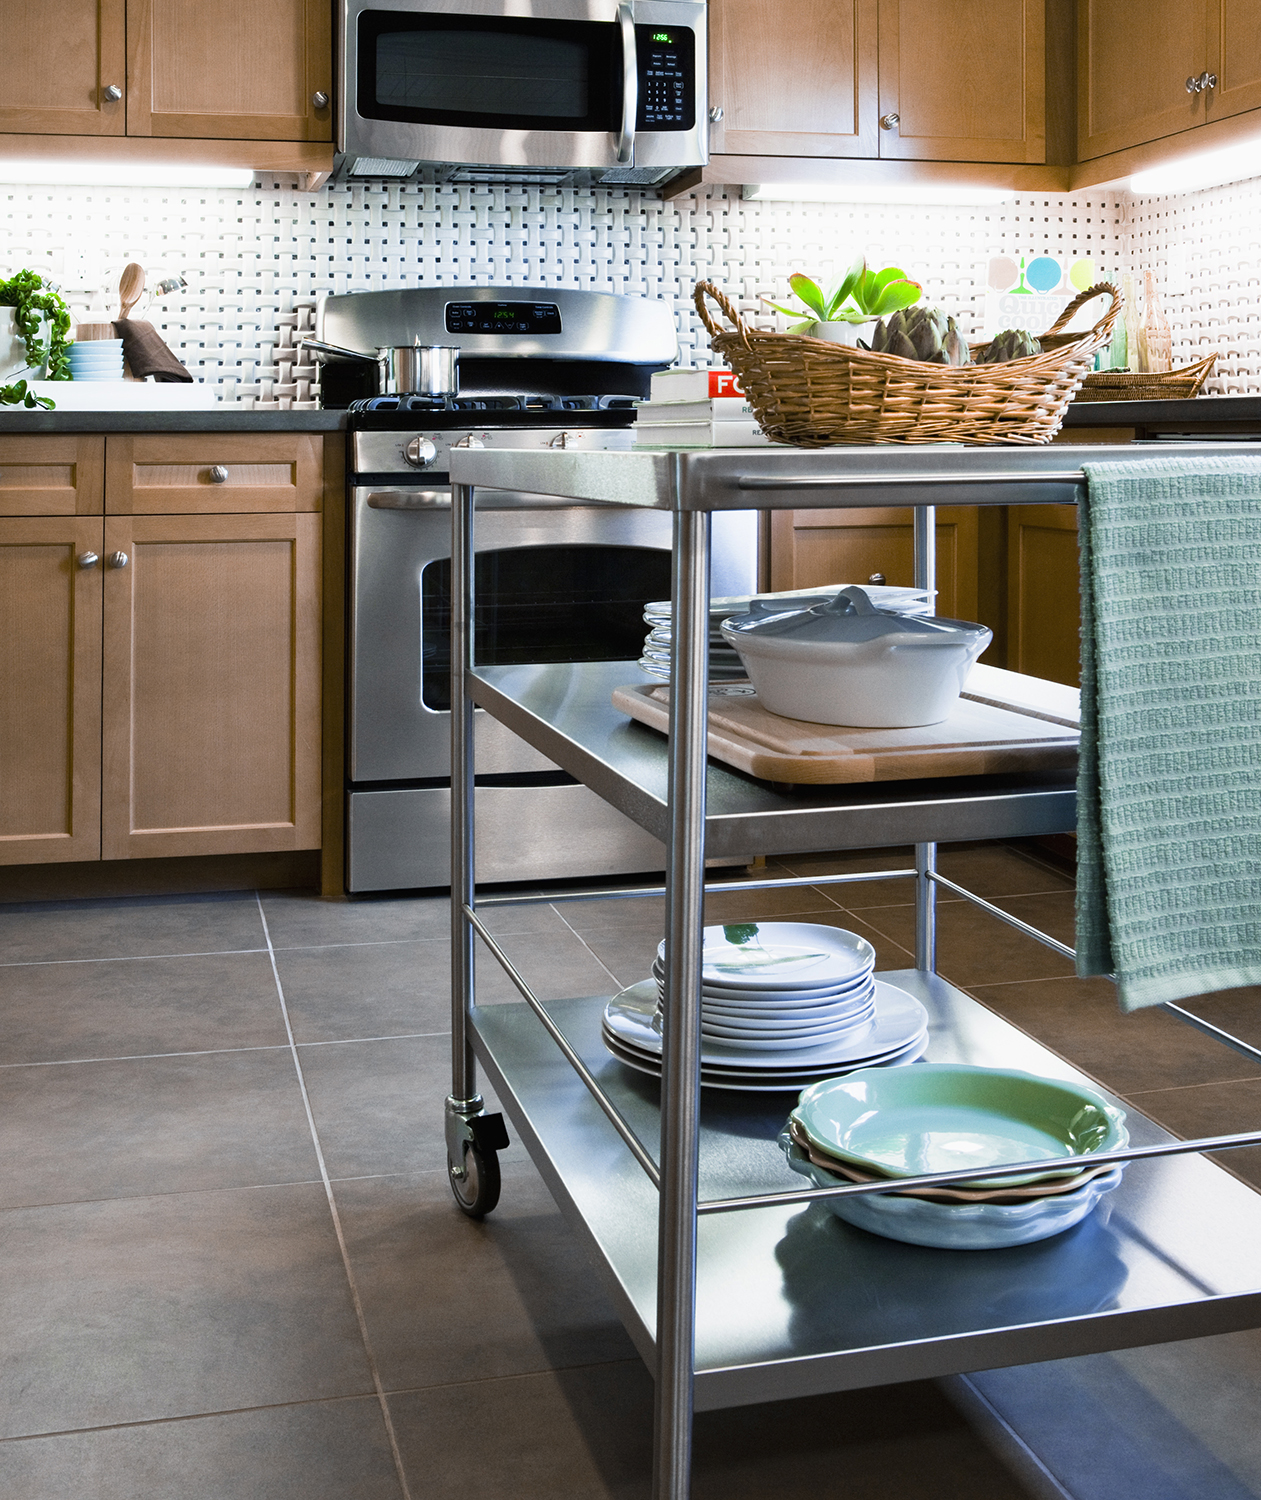 Awesome Rental Apartment Kitchen Decorating Ideas: How To Spruce Up Your Rental Kitchen